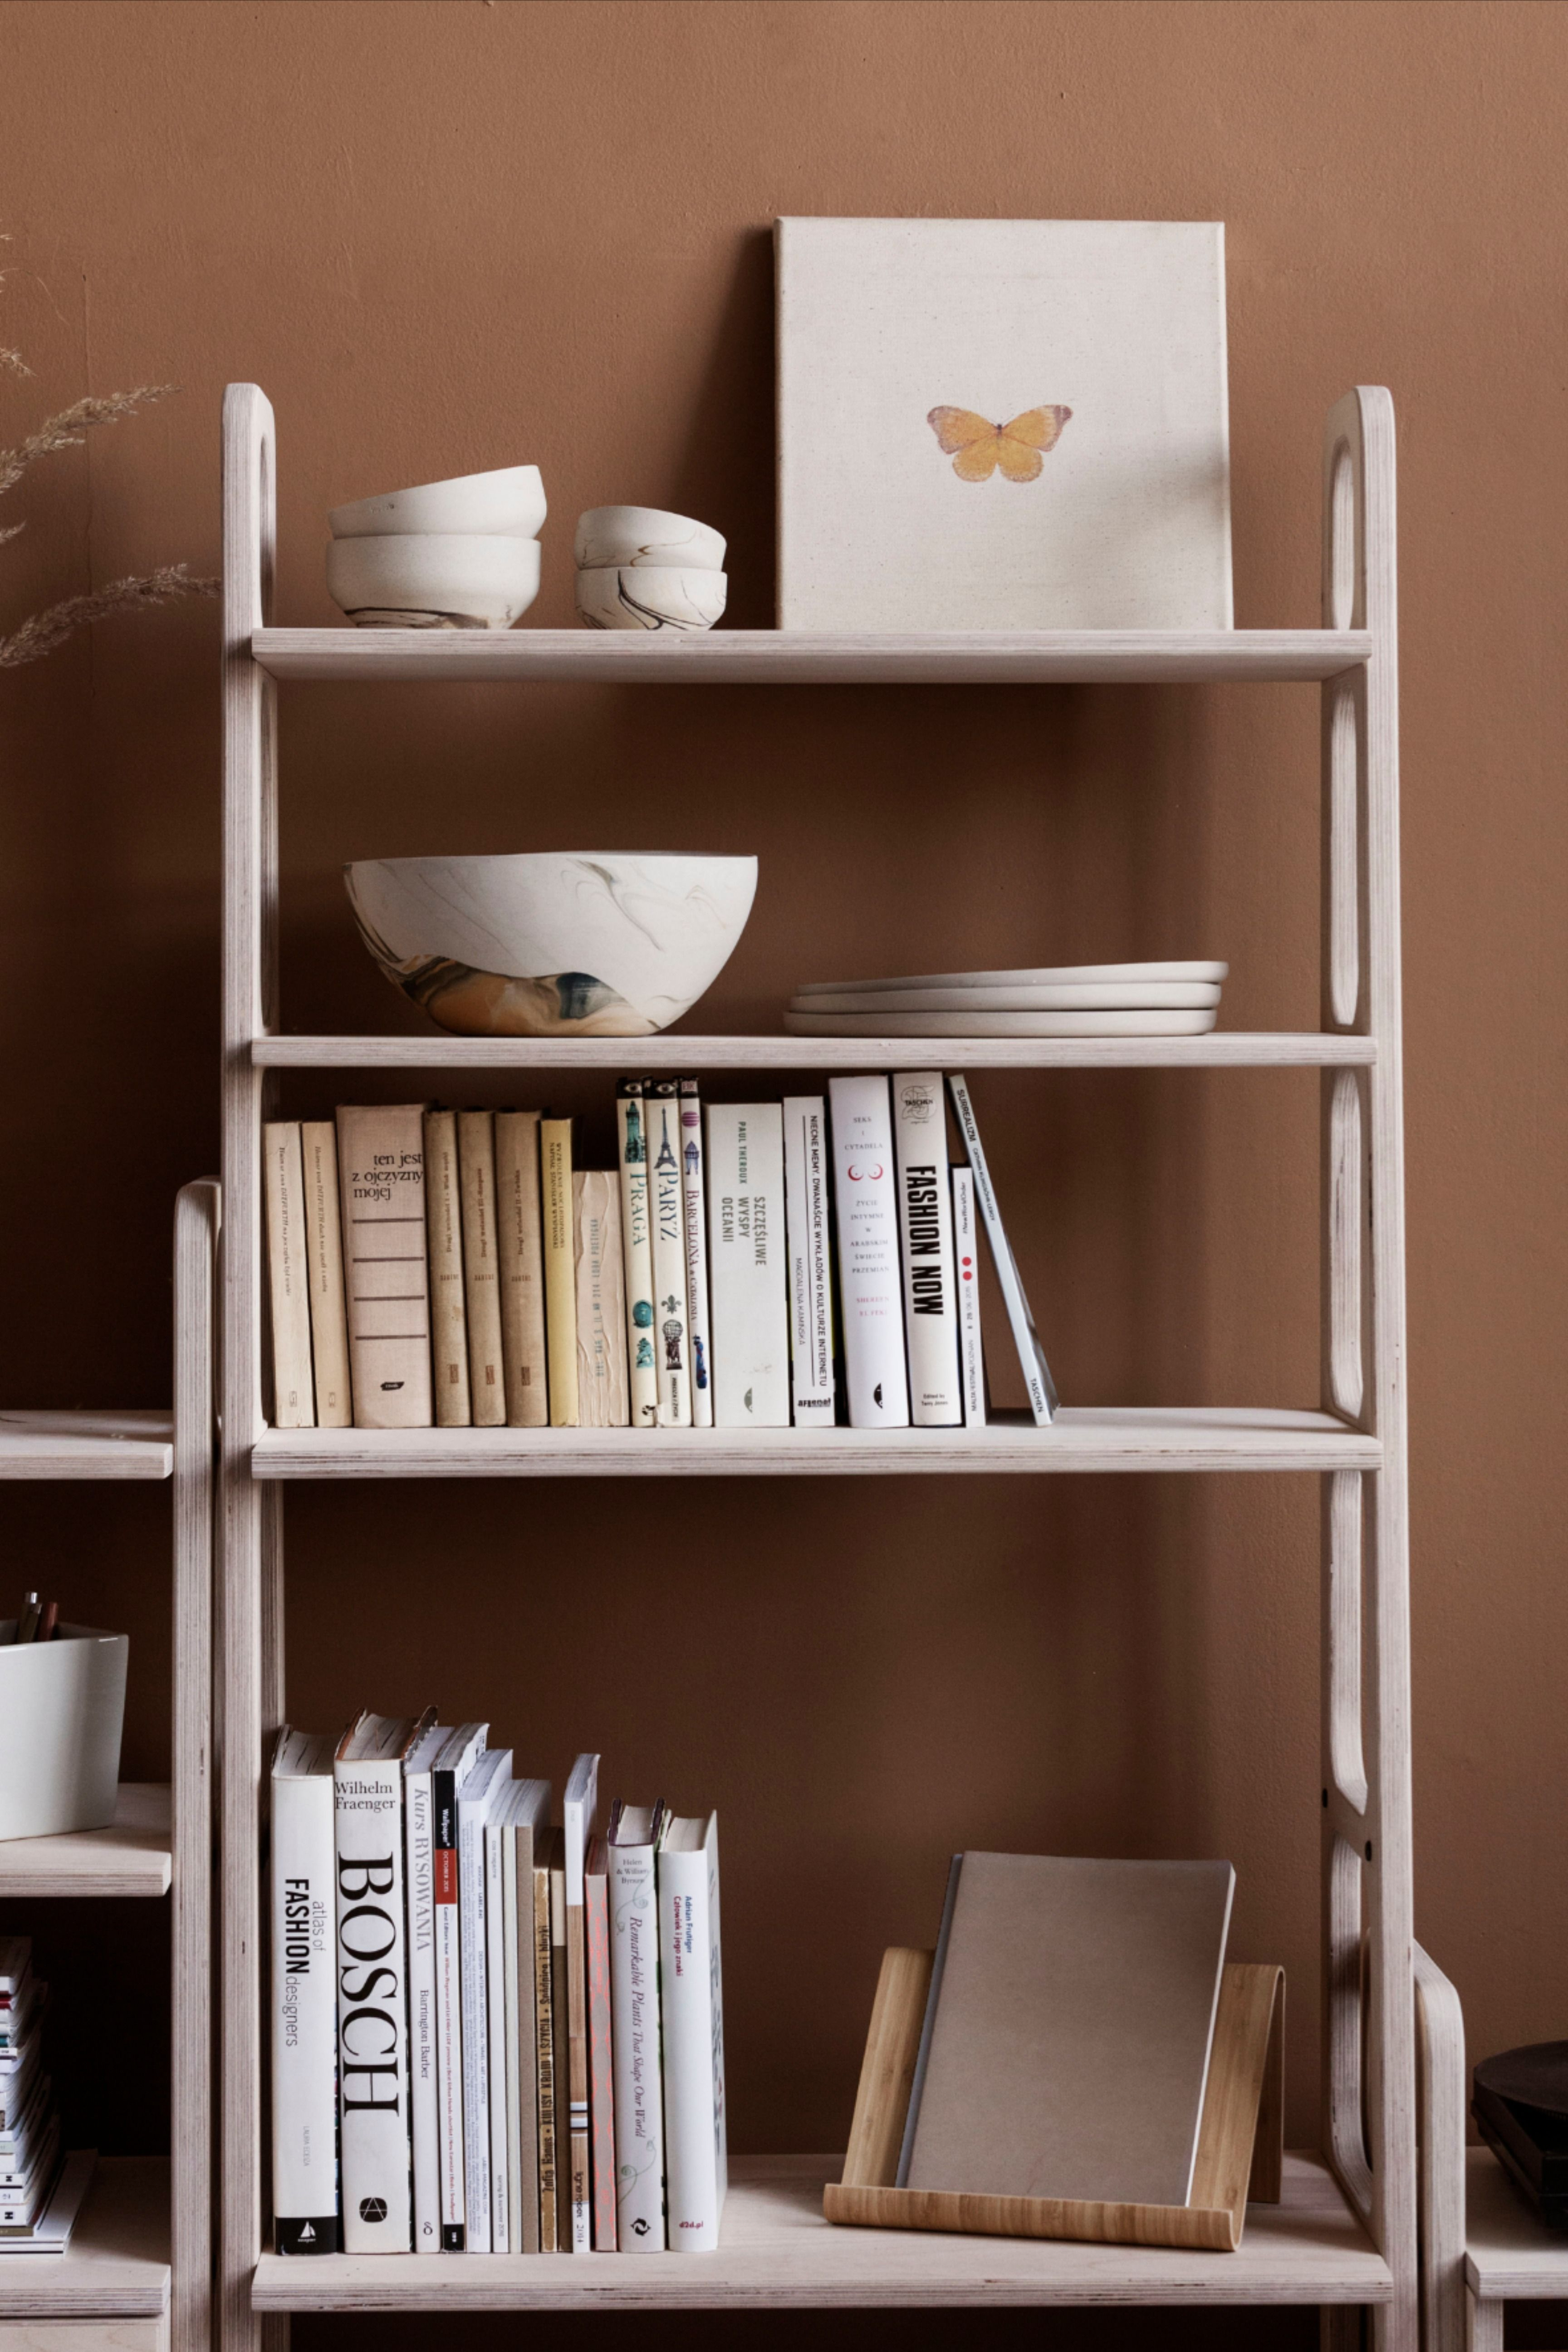 Bookshelf Styling Mid Century Bookcase Frisk Maxi With 5 Shelves Scandinavian Design In 2020 Mid Century Bookcase Bookcase Shelves